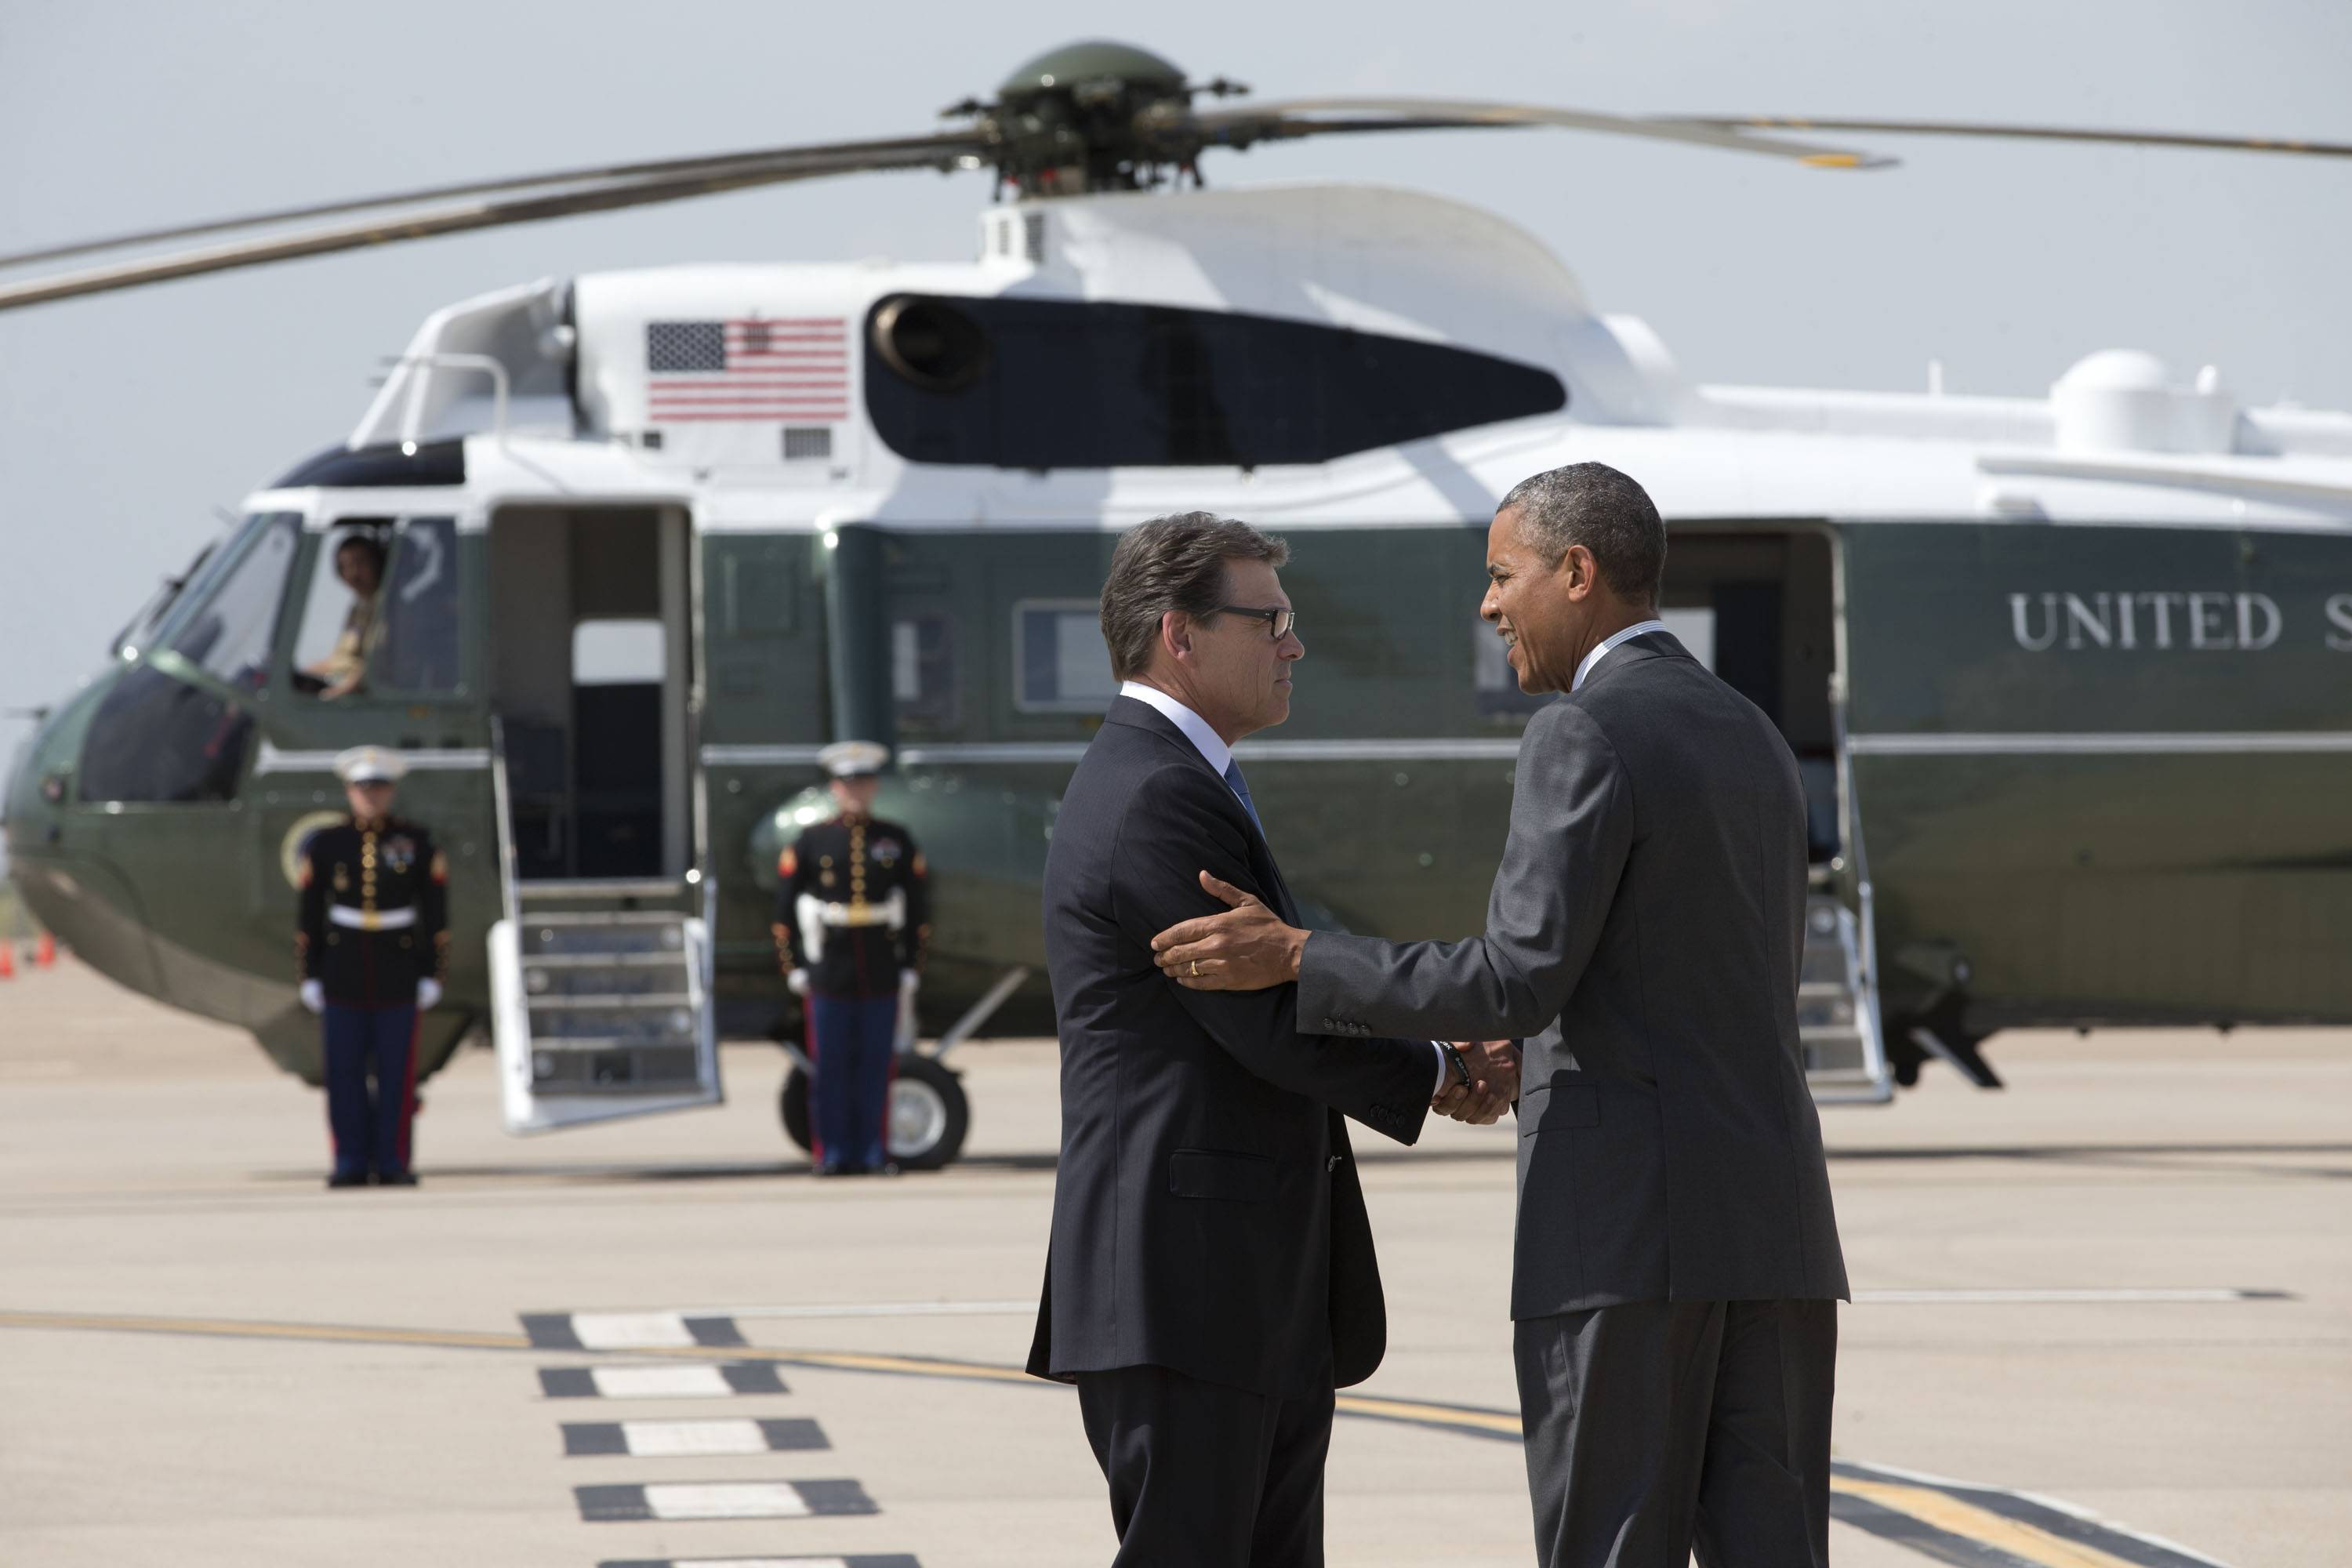 President Barack Obama, seen greeting Texas Gov. Rick Perry as he arrives at Dallas/Fort Worth Wednesday, pleaded with Congress to immediately pass an emergency funding request to deal with a flood of migrant children at the U.S. border and urged Perry to pressure fellow Republicans to get it done.